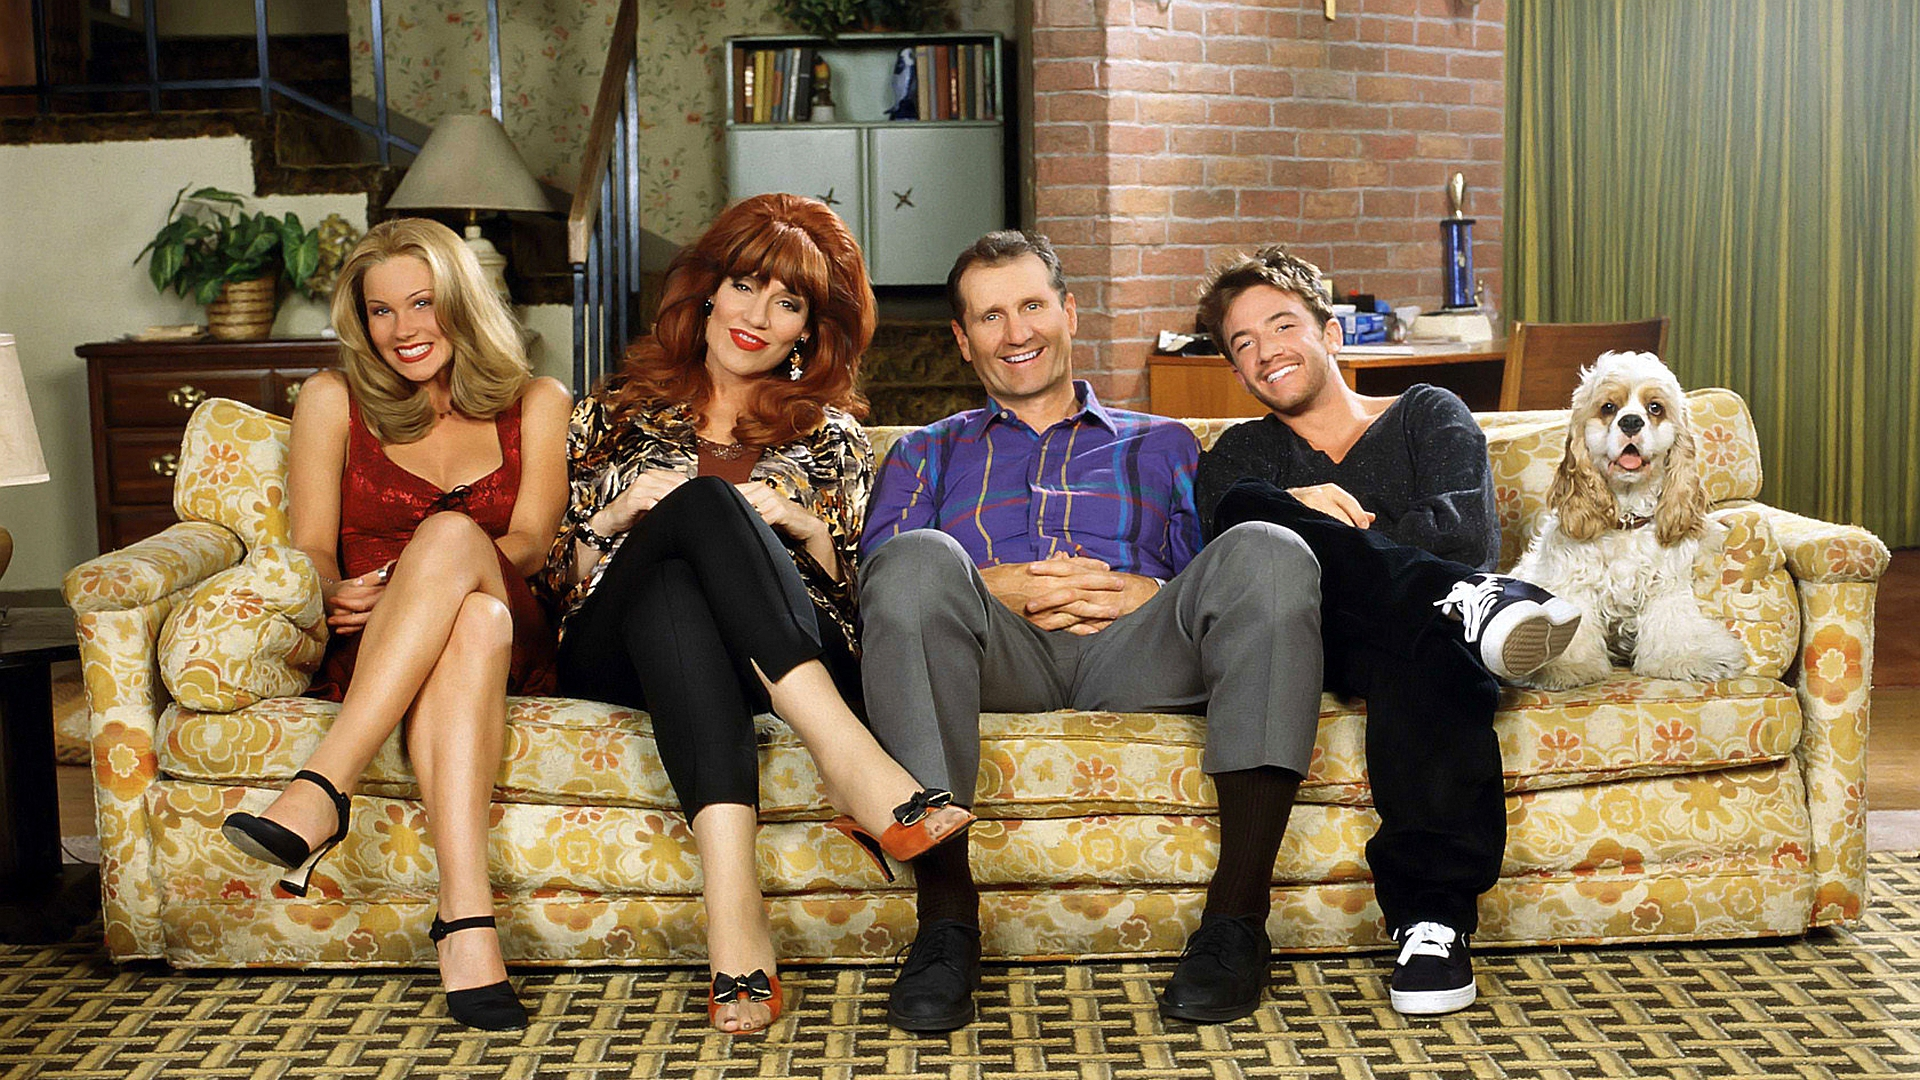 Married With Children: April 2013